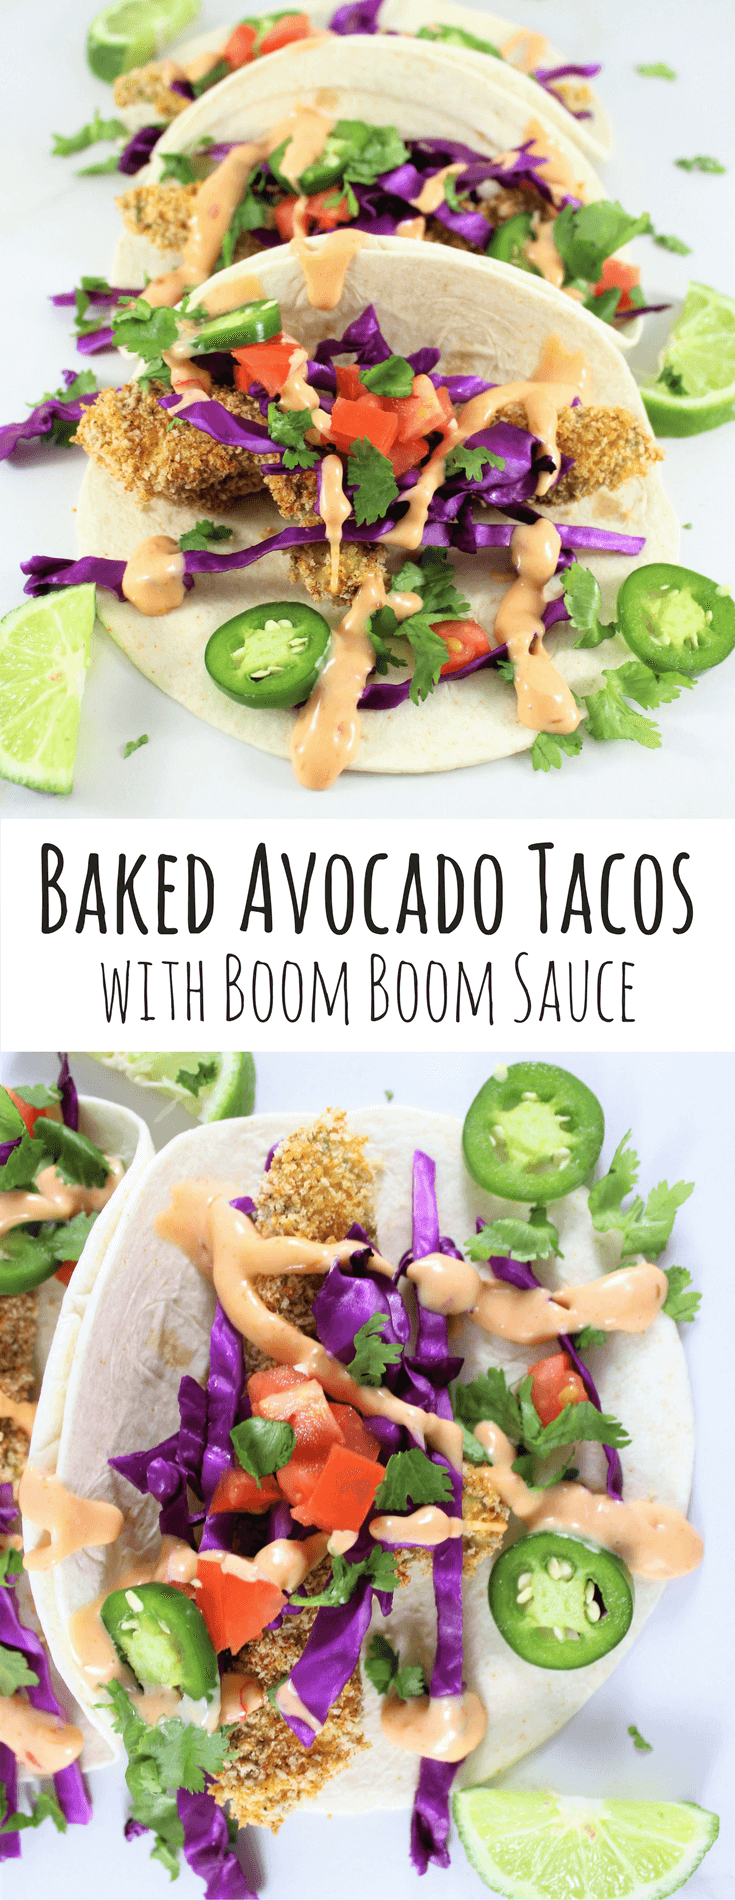 Baked Avocado Tacos with Boom Boom Sauce